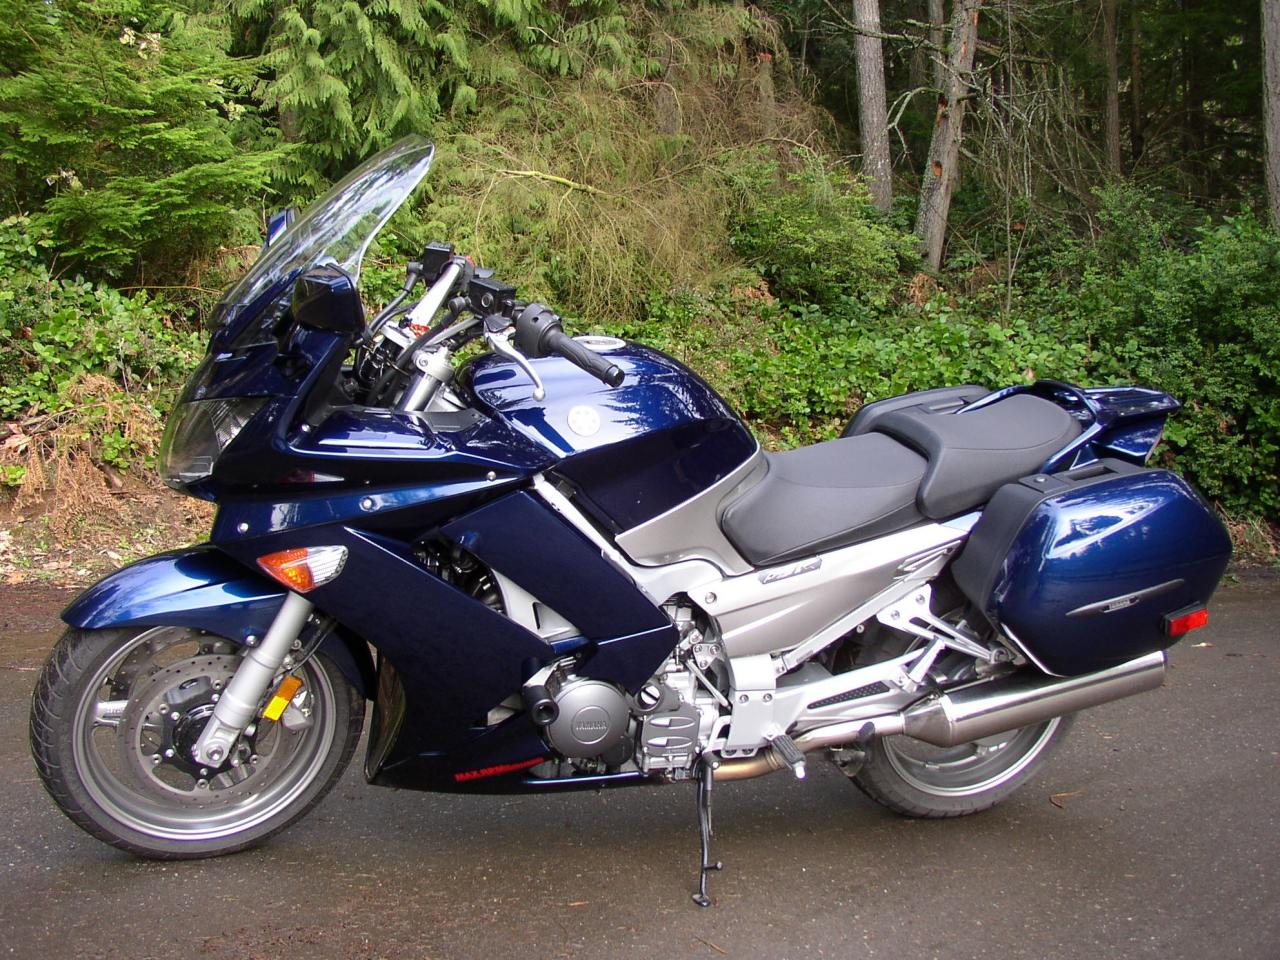 2006 yamaha fjr 1300 moto zombdrive com. Black Bedroom Furniture Sets. Home Design Ideas